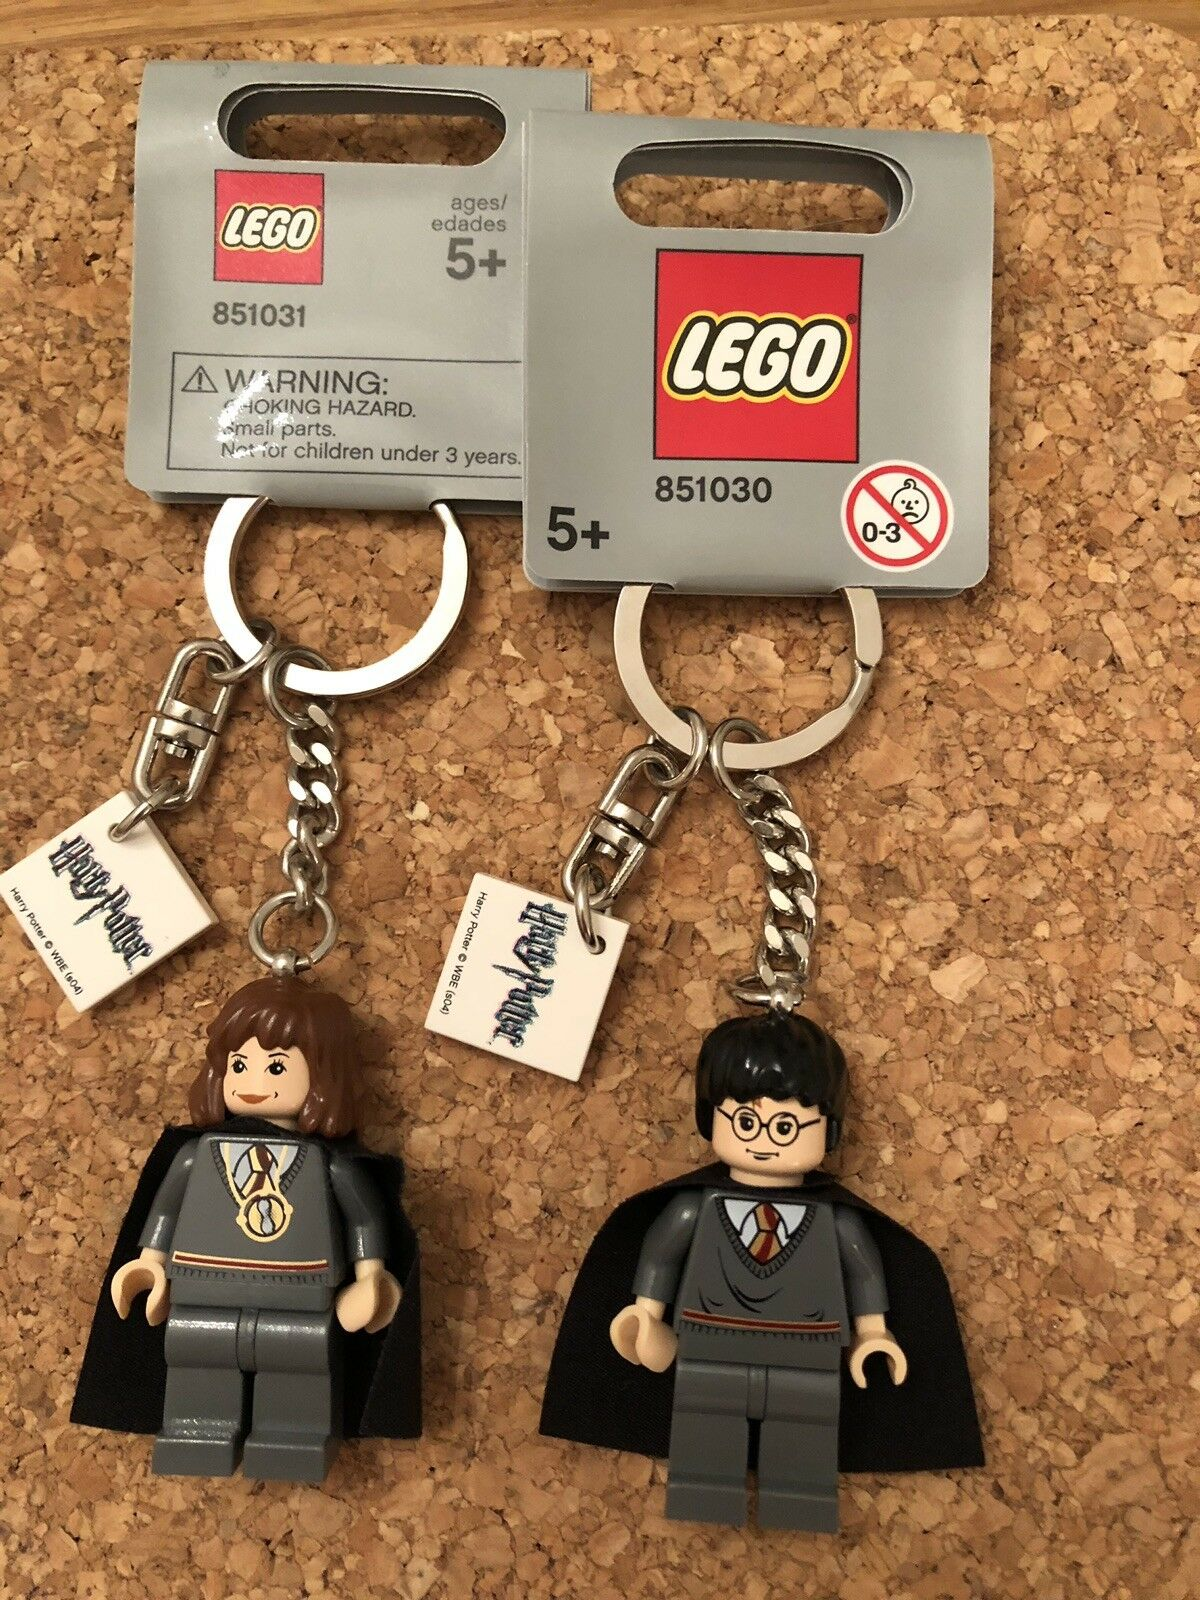 Lego Harry Potter Hermione Granger Pair Keying GREY TAG 851030 851031 RARE NWT